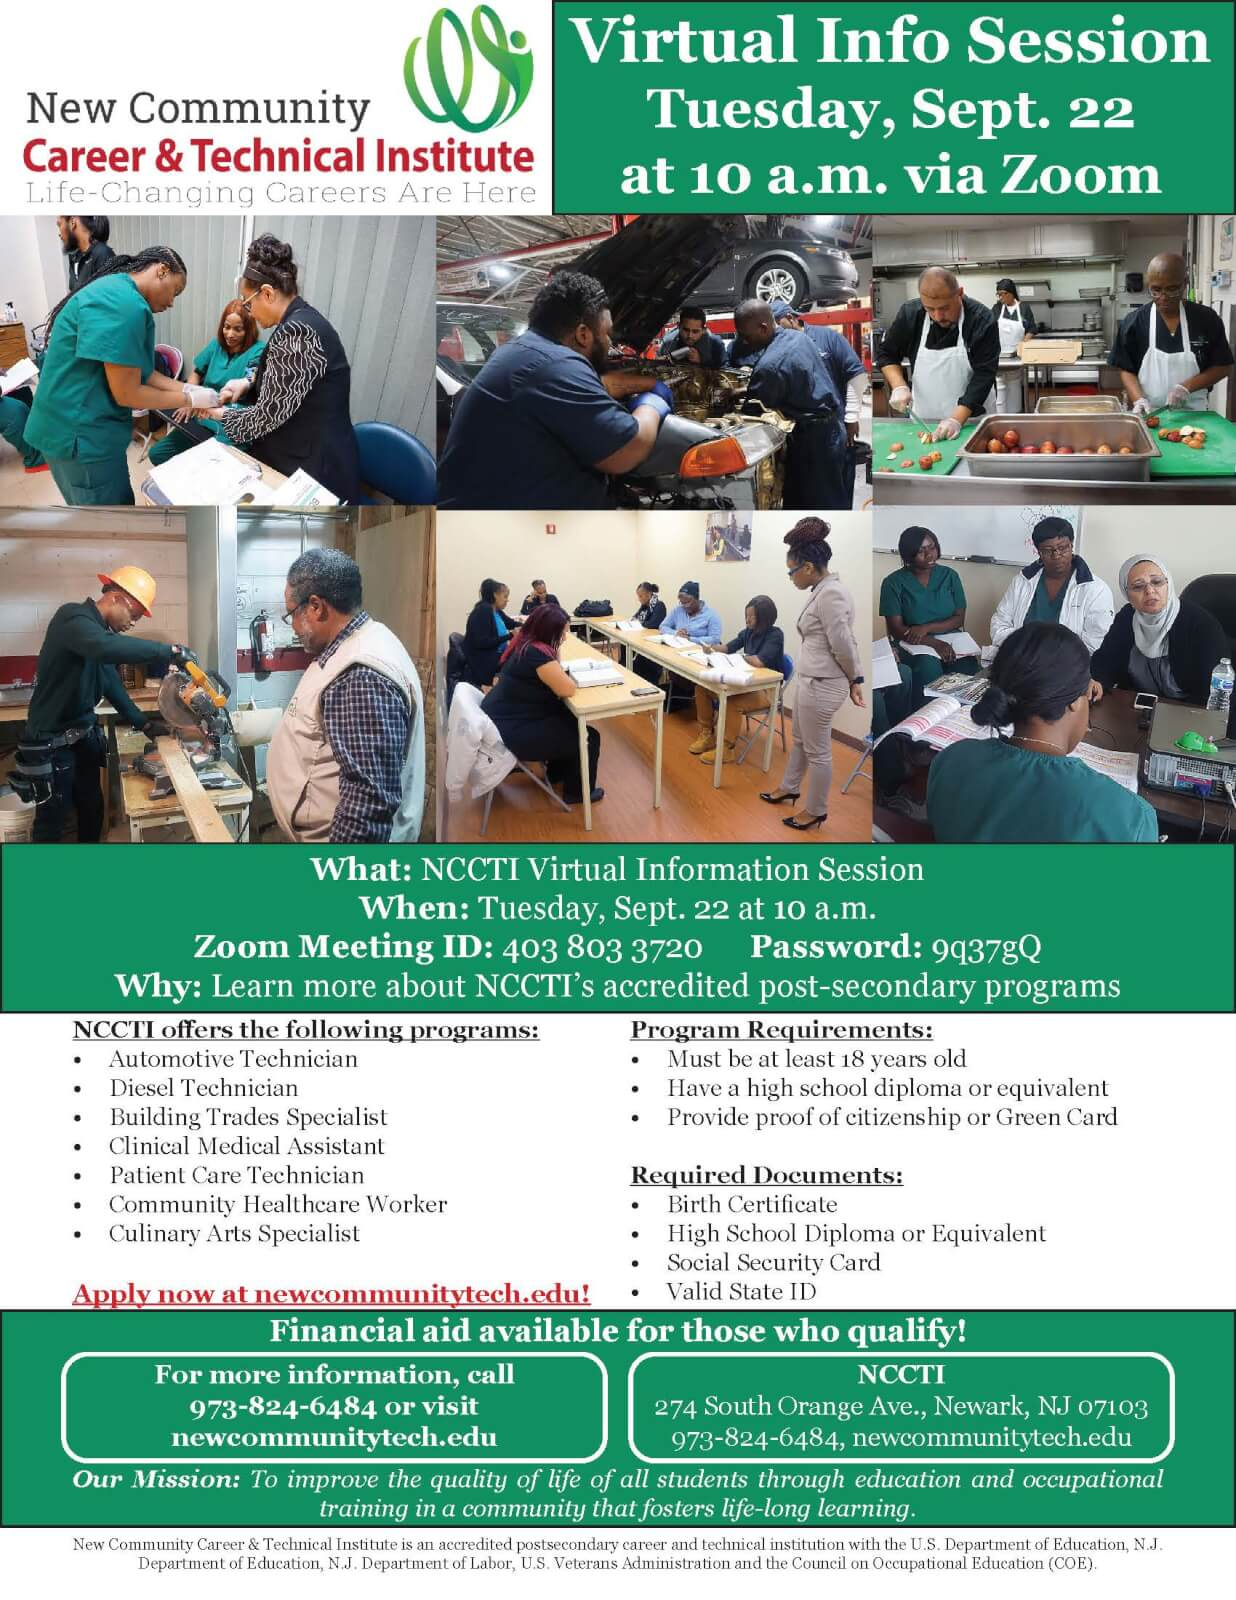 New Community Career & Technical Institute Virtual Info Session